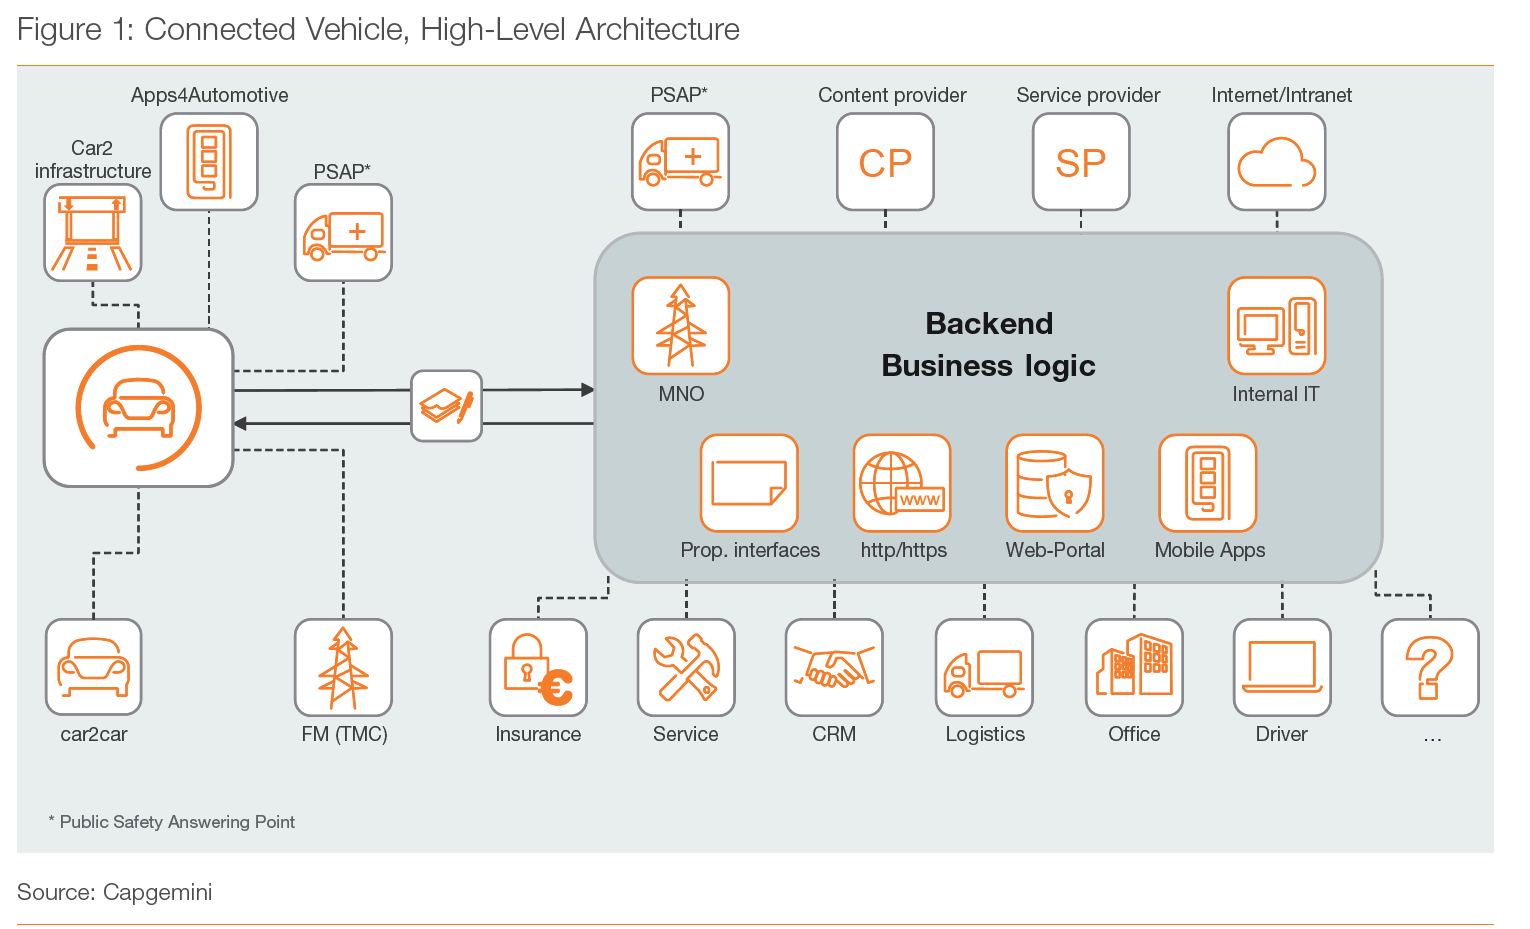 Ref: Cybersecurity for the Connected Vehicle